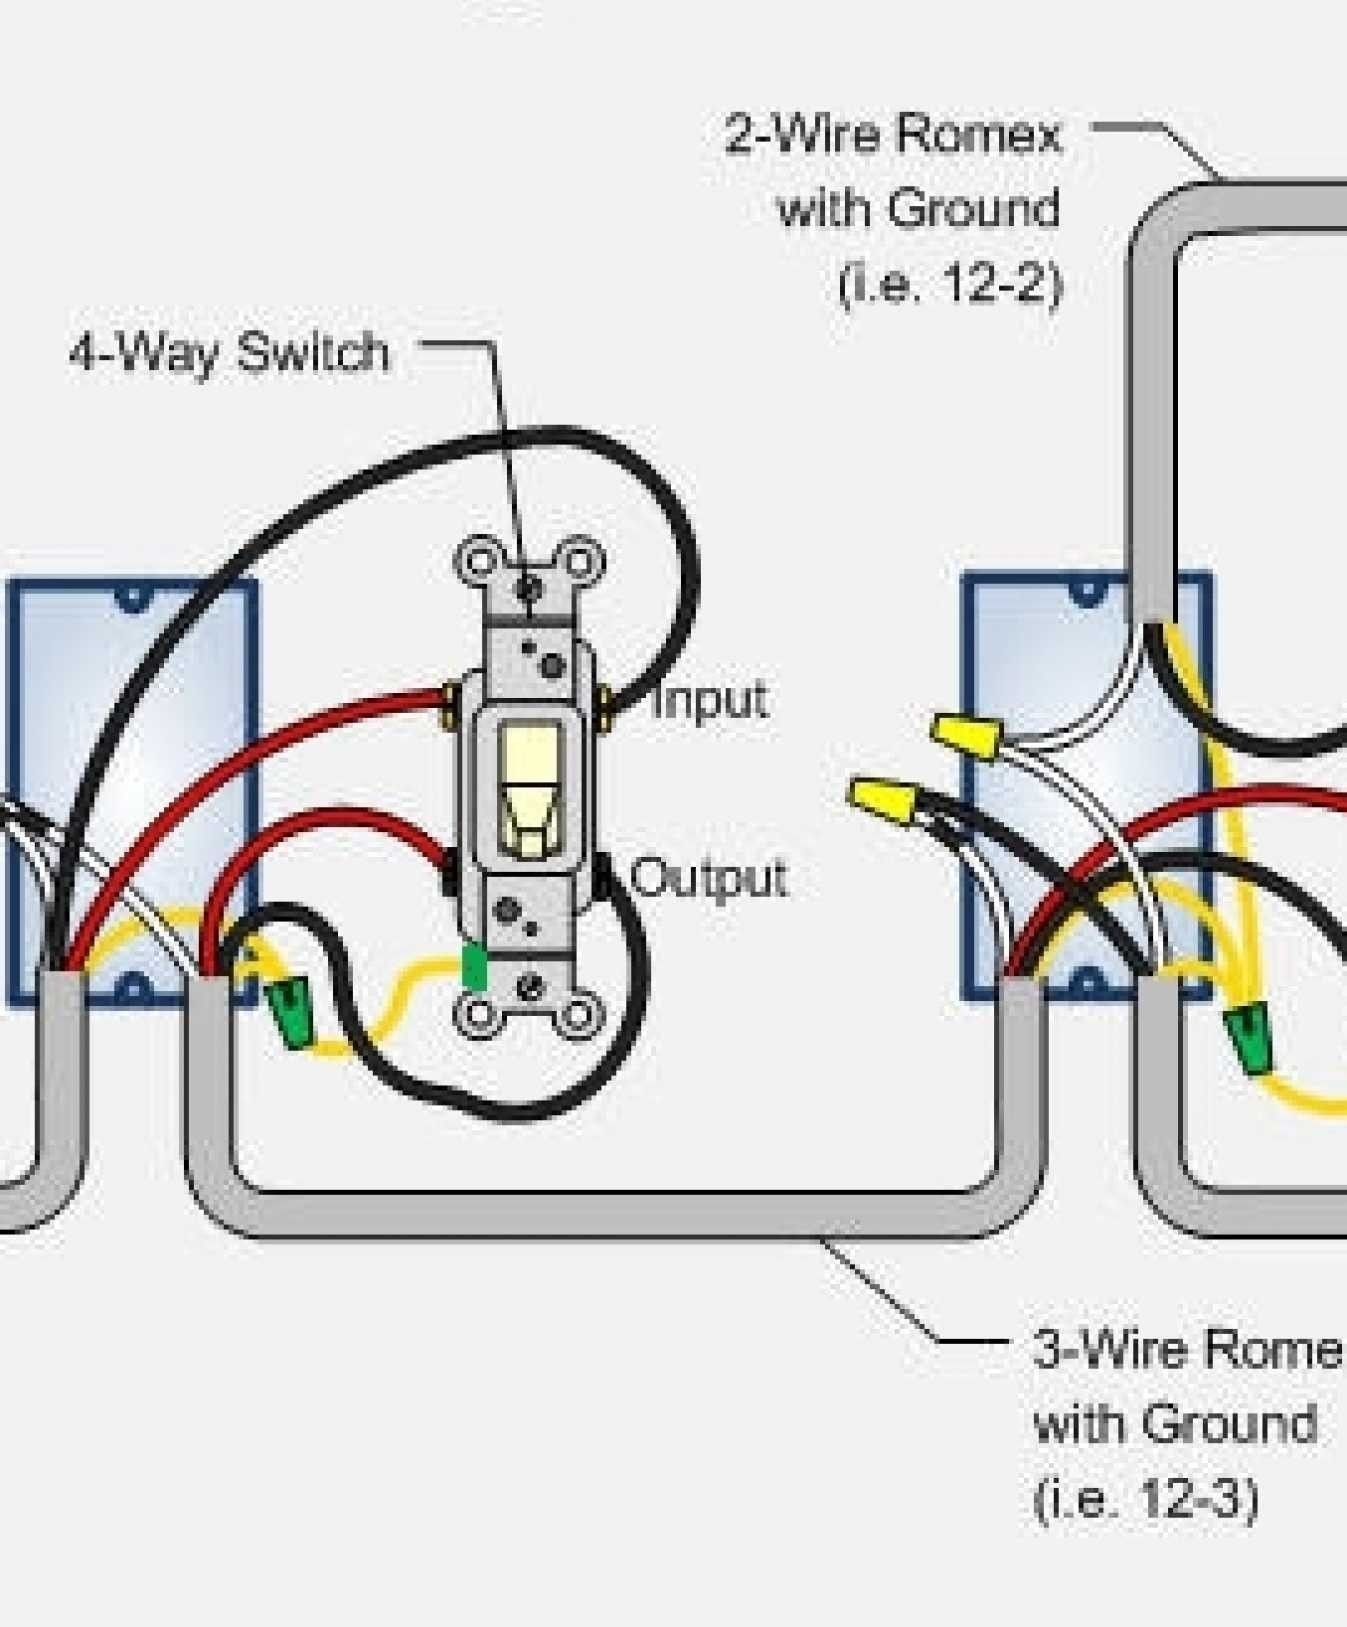 Unique Light Switch Connection Diagram Diagram Wiringdiagram Diagramming Diagramm Visuals Visualisa Light Switch Wiring 3 Way Switch Wiring Outlet Wiring